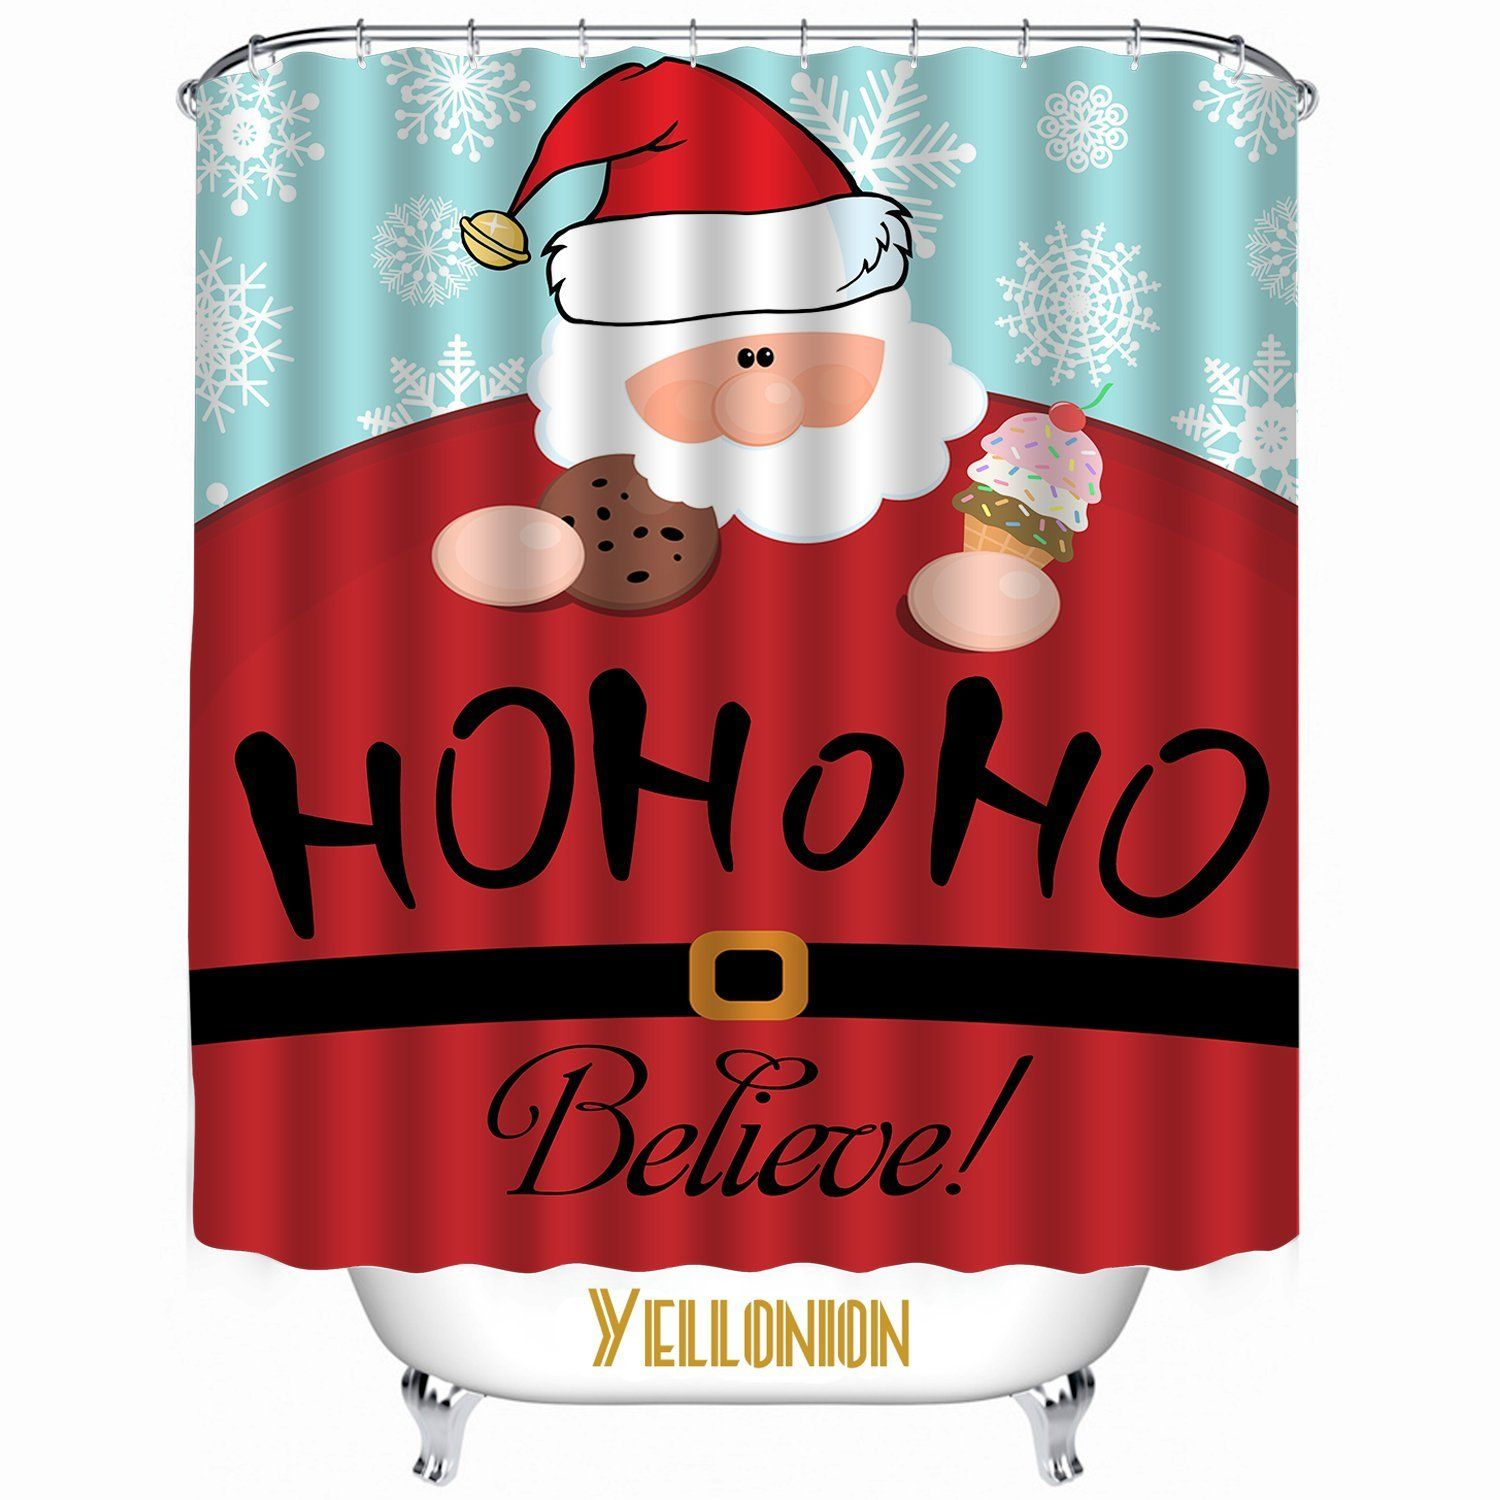 YELLONION™ Christmas Santa Claus Believe HOHOHO Decorative Bath Curtain,Mildew Resistant Waterproof Fabric Shower Curtain Standard Size 72x72 Inch List Price :$69.99 USD Coupon code: XGI95VVK Price After Discount : $29.99 USD @lukagod @bqoolcn #discount #coupon #curtain #christmas #santa #claus #bath #waterproof